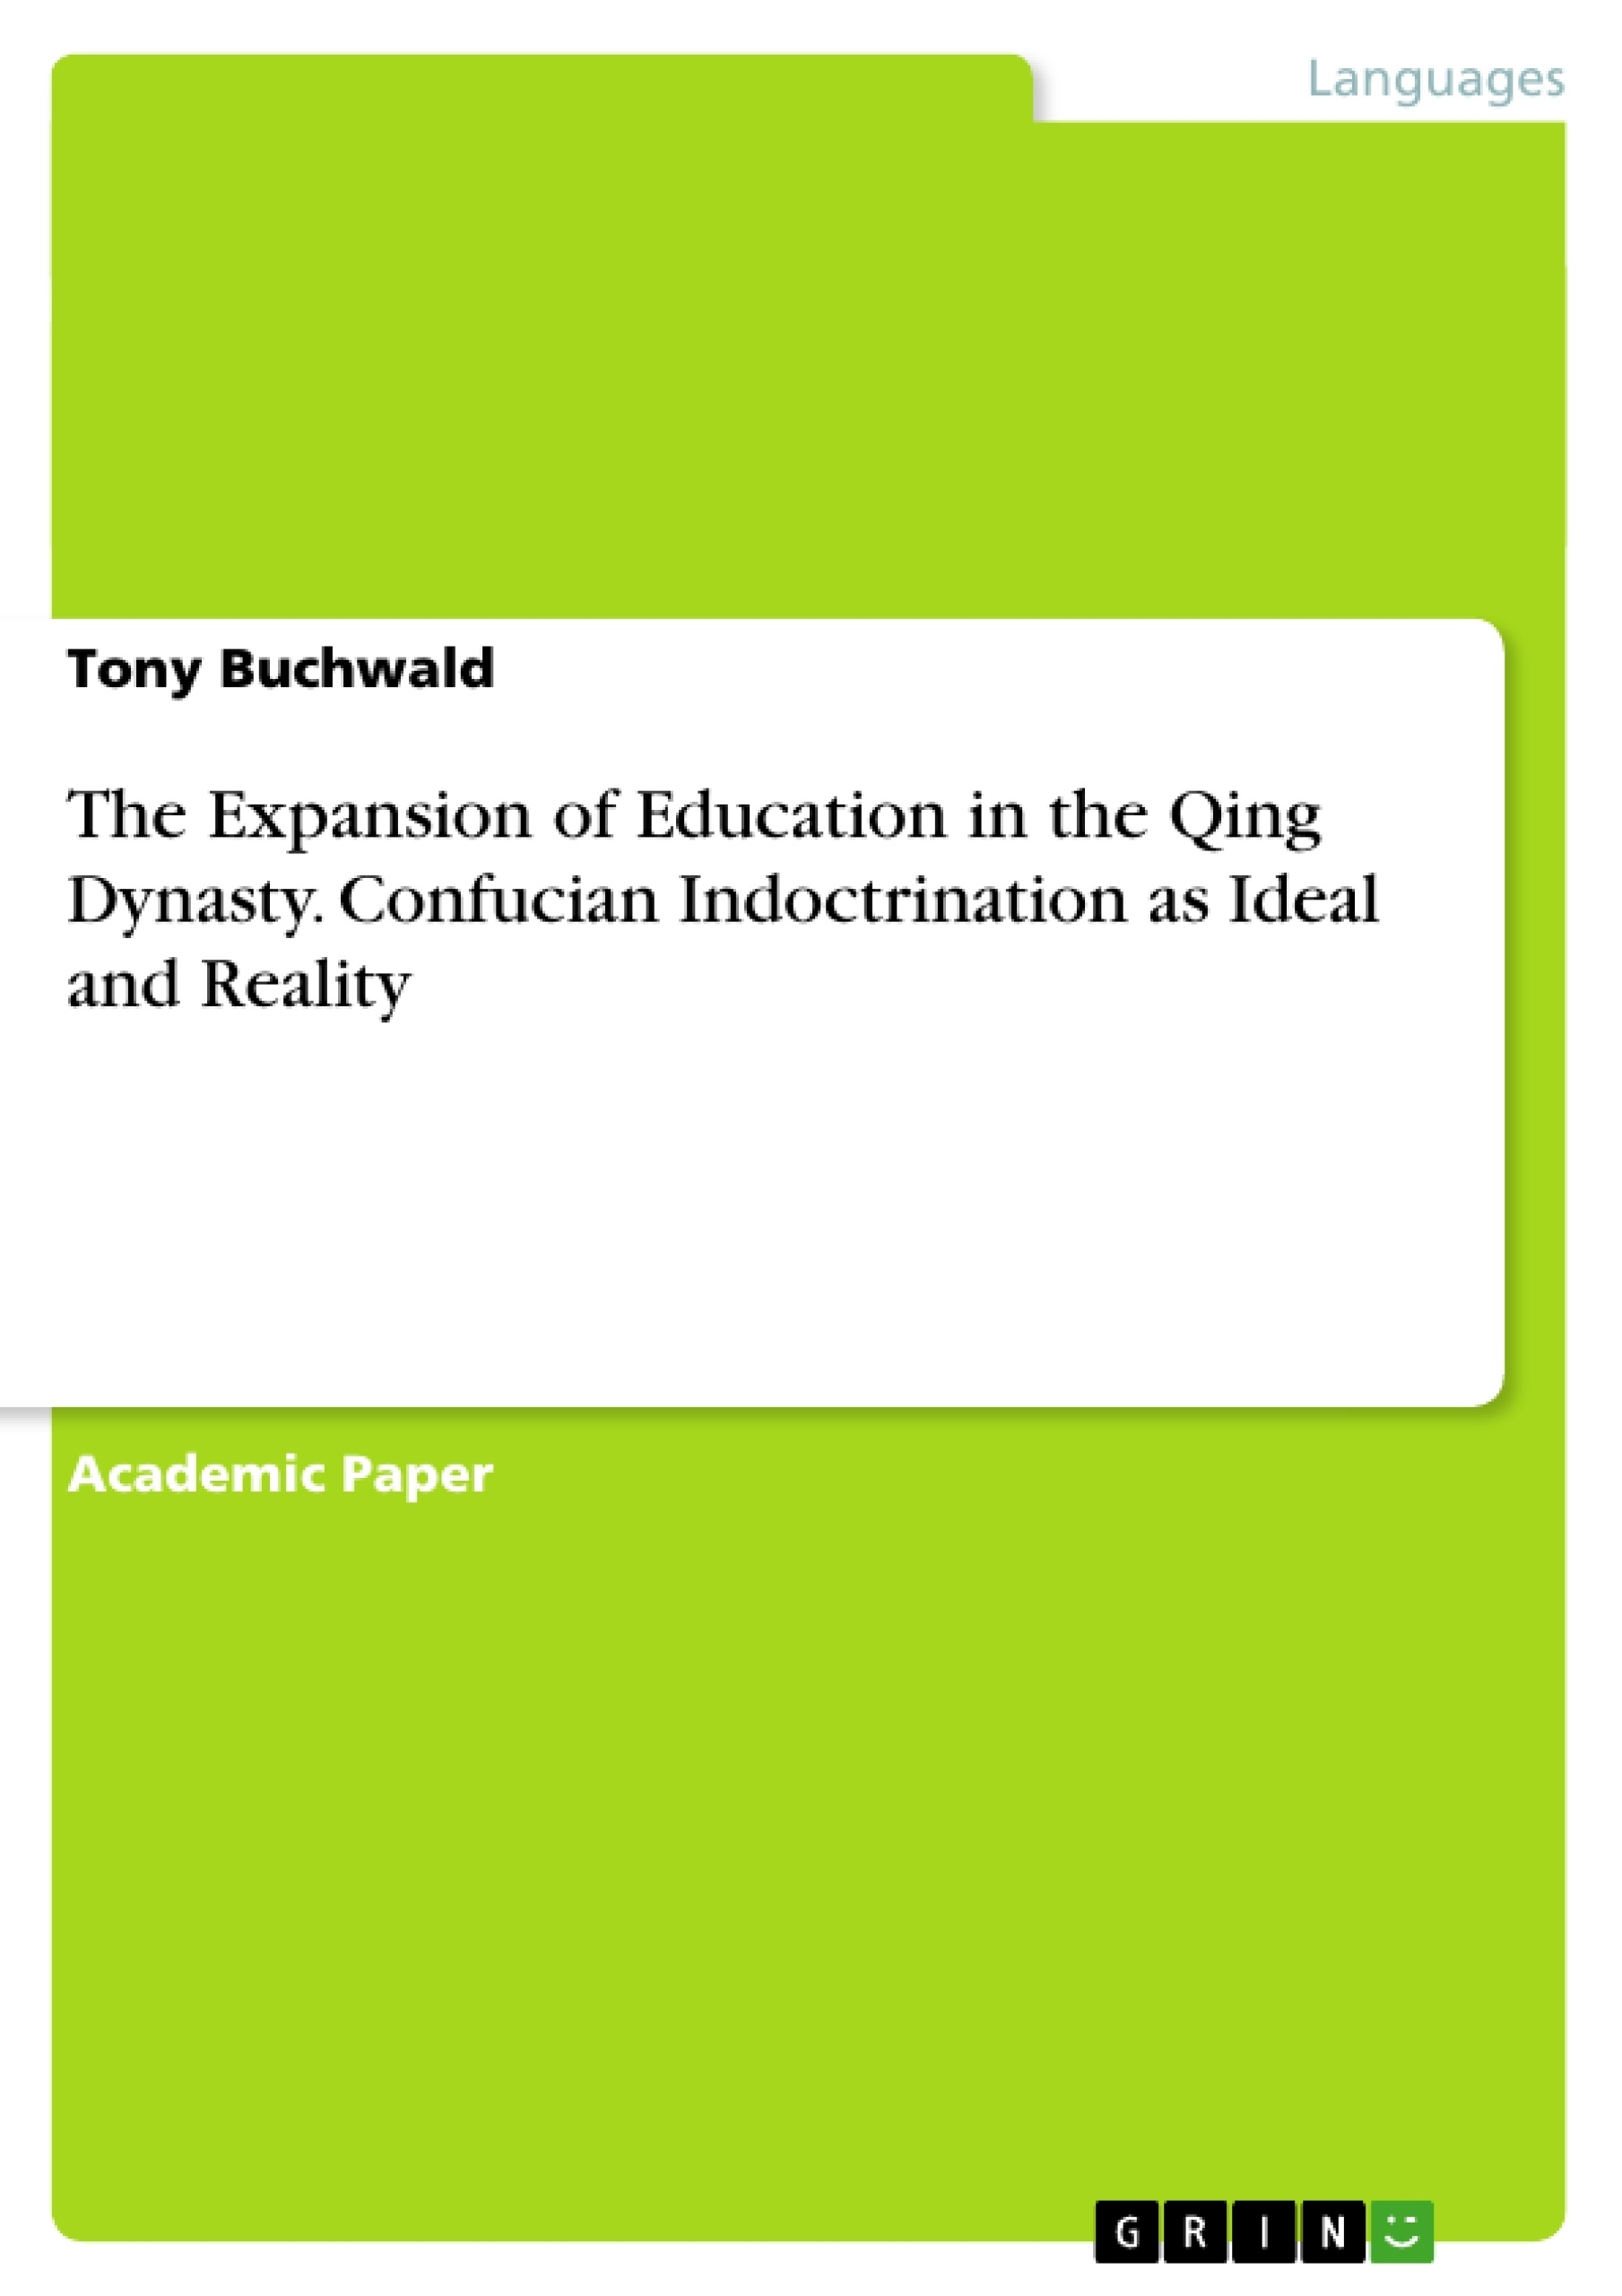 Title: The Expansion of Education in the Qing Dynasty. Confucian Indoctrination as Ideal and Reality